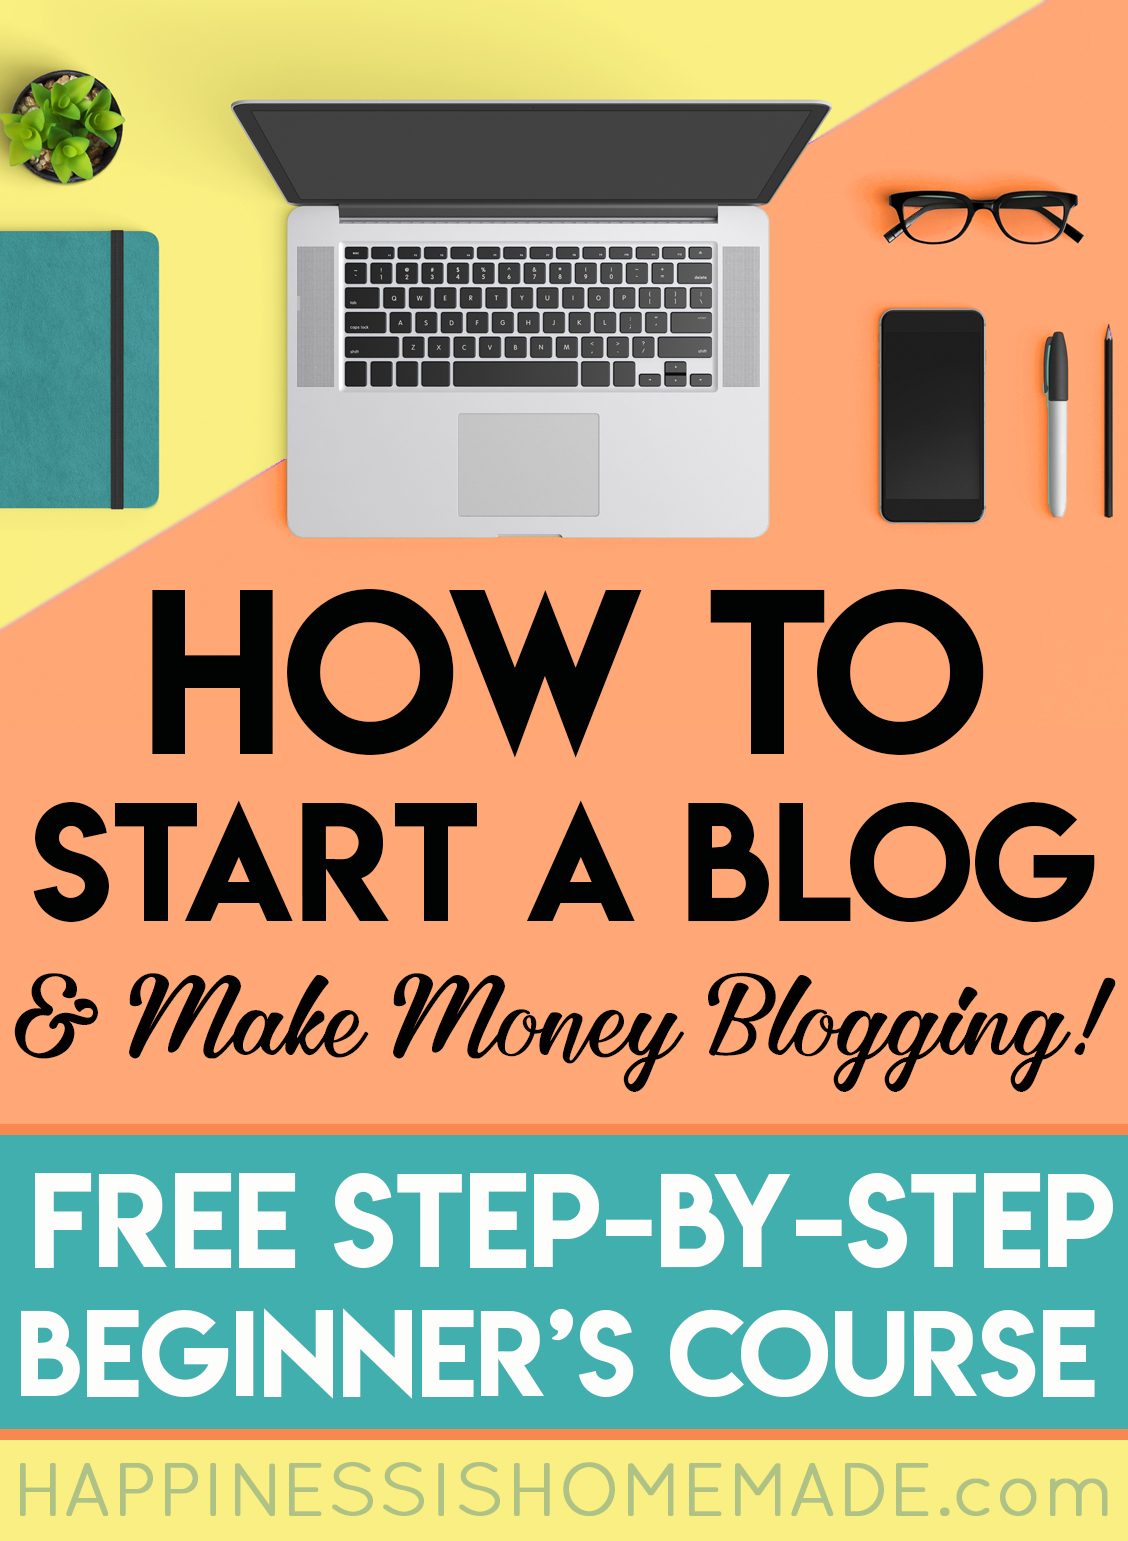 How To Make A Blog >> How To Start A Blog In 2019 Free Step By Step Beginner S Course